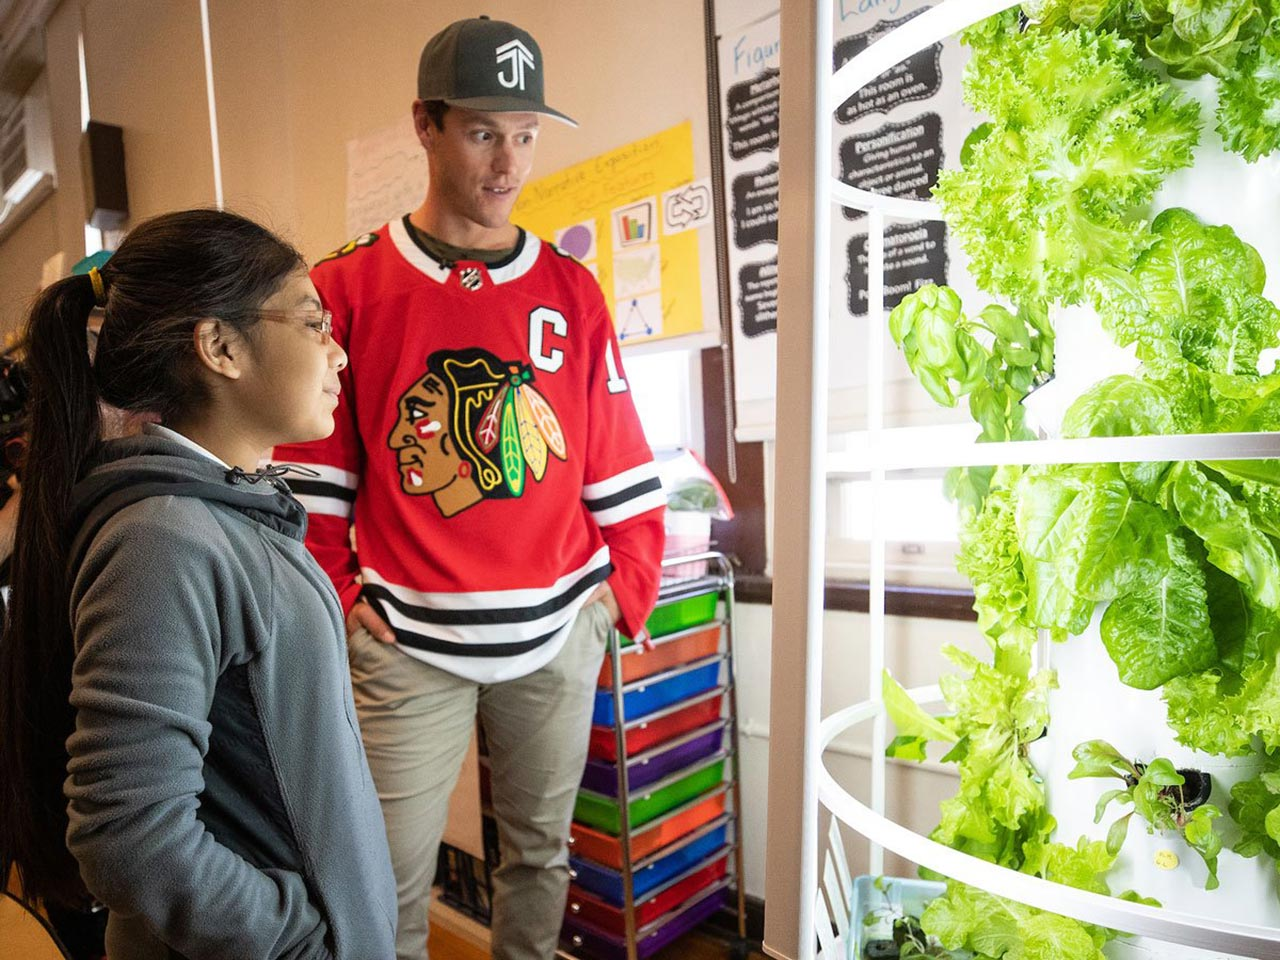 Partnership with Jonathan Toews Foundation and Chicago Blackhawks